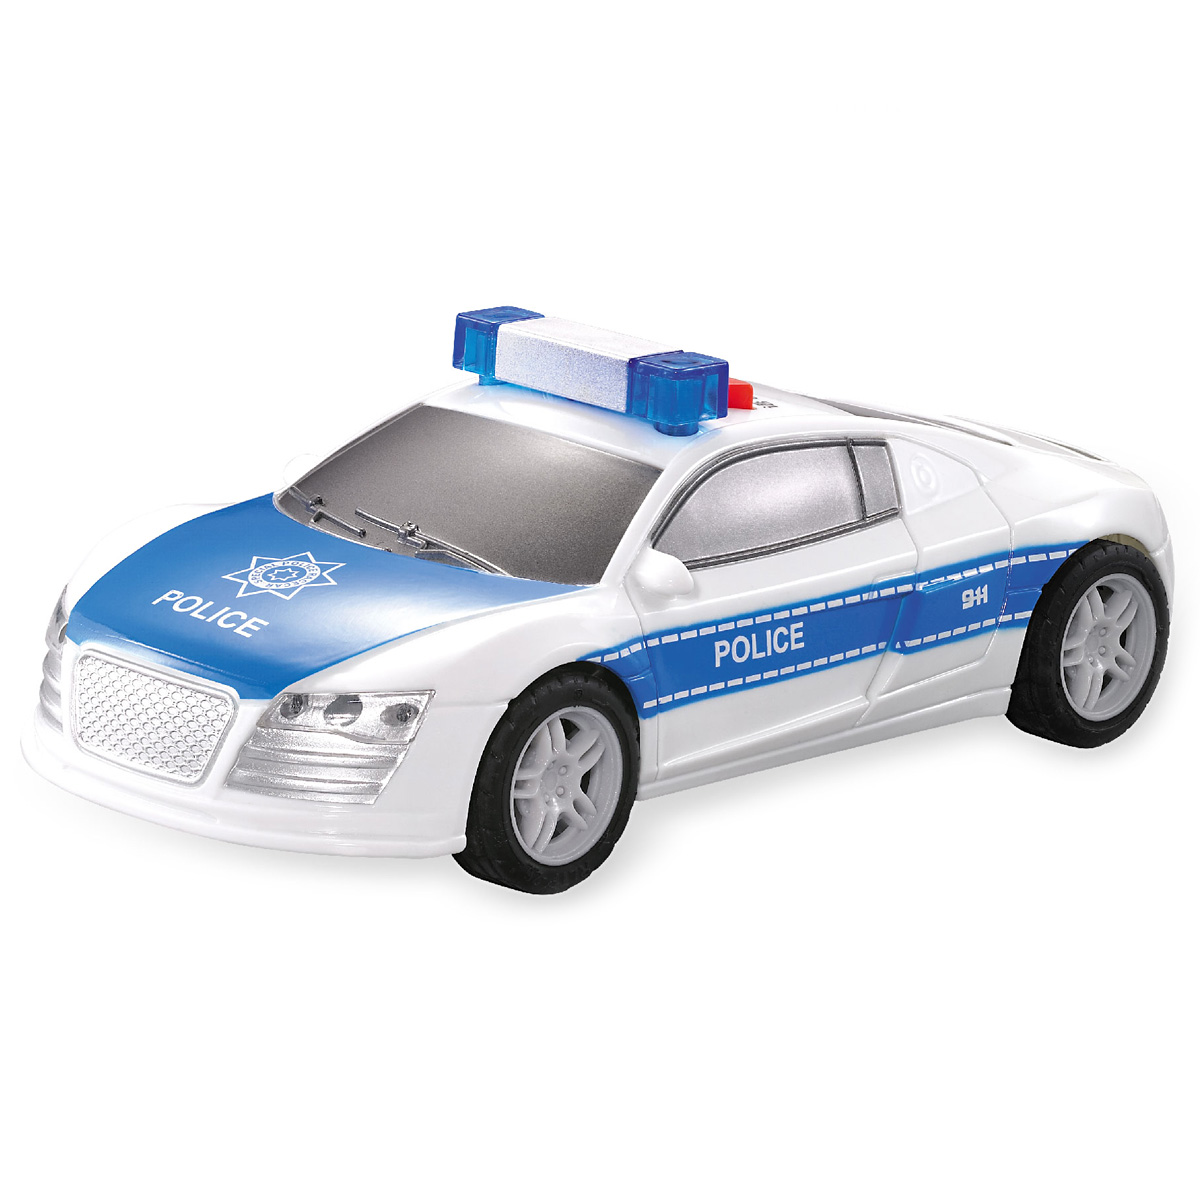 Drift Машинка Спецтехника Police Car Light drift машинка спецтехника city crane